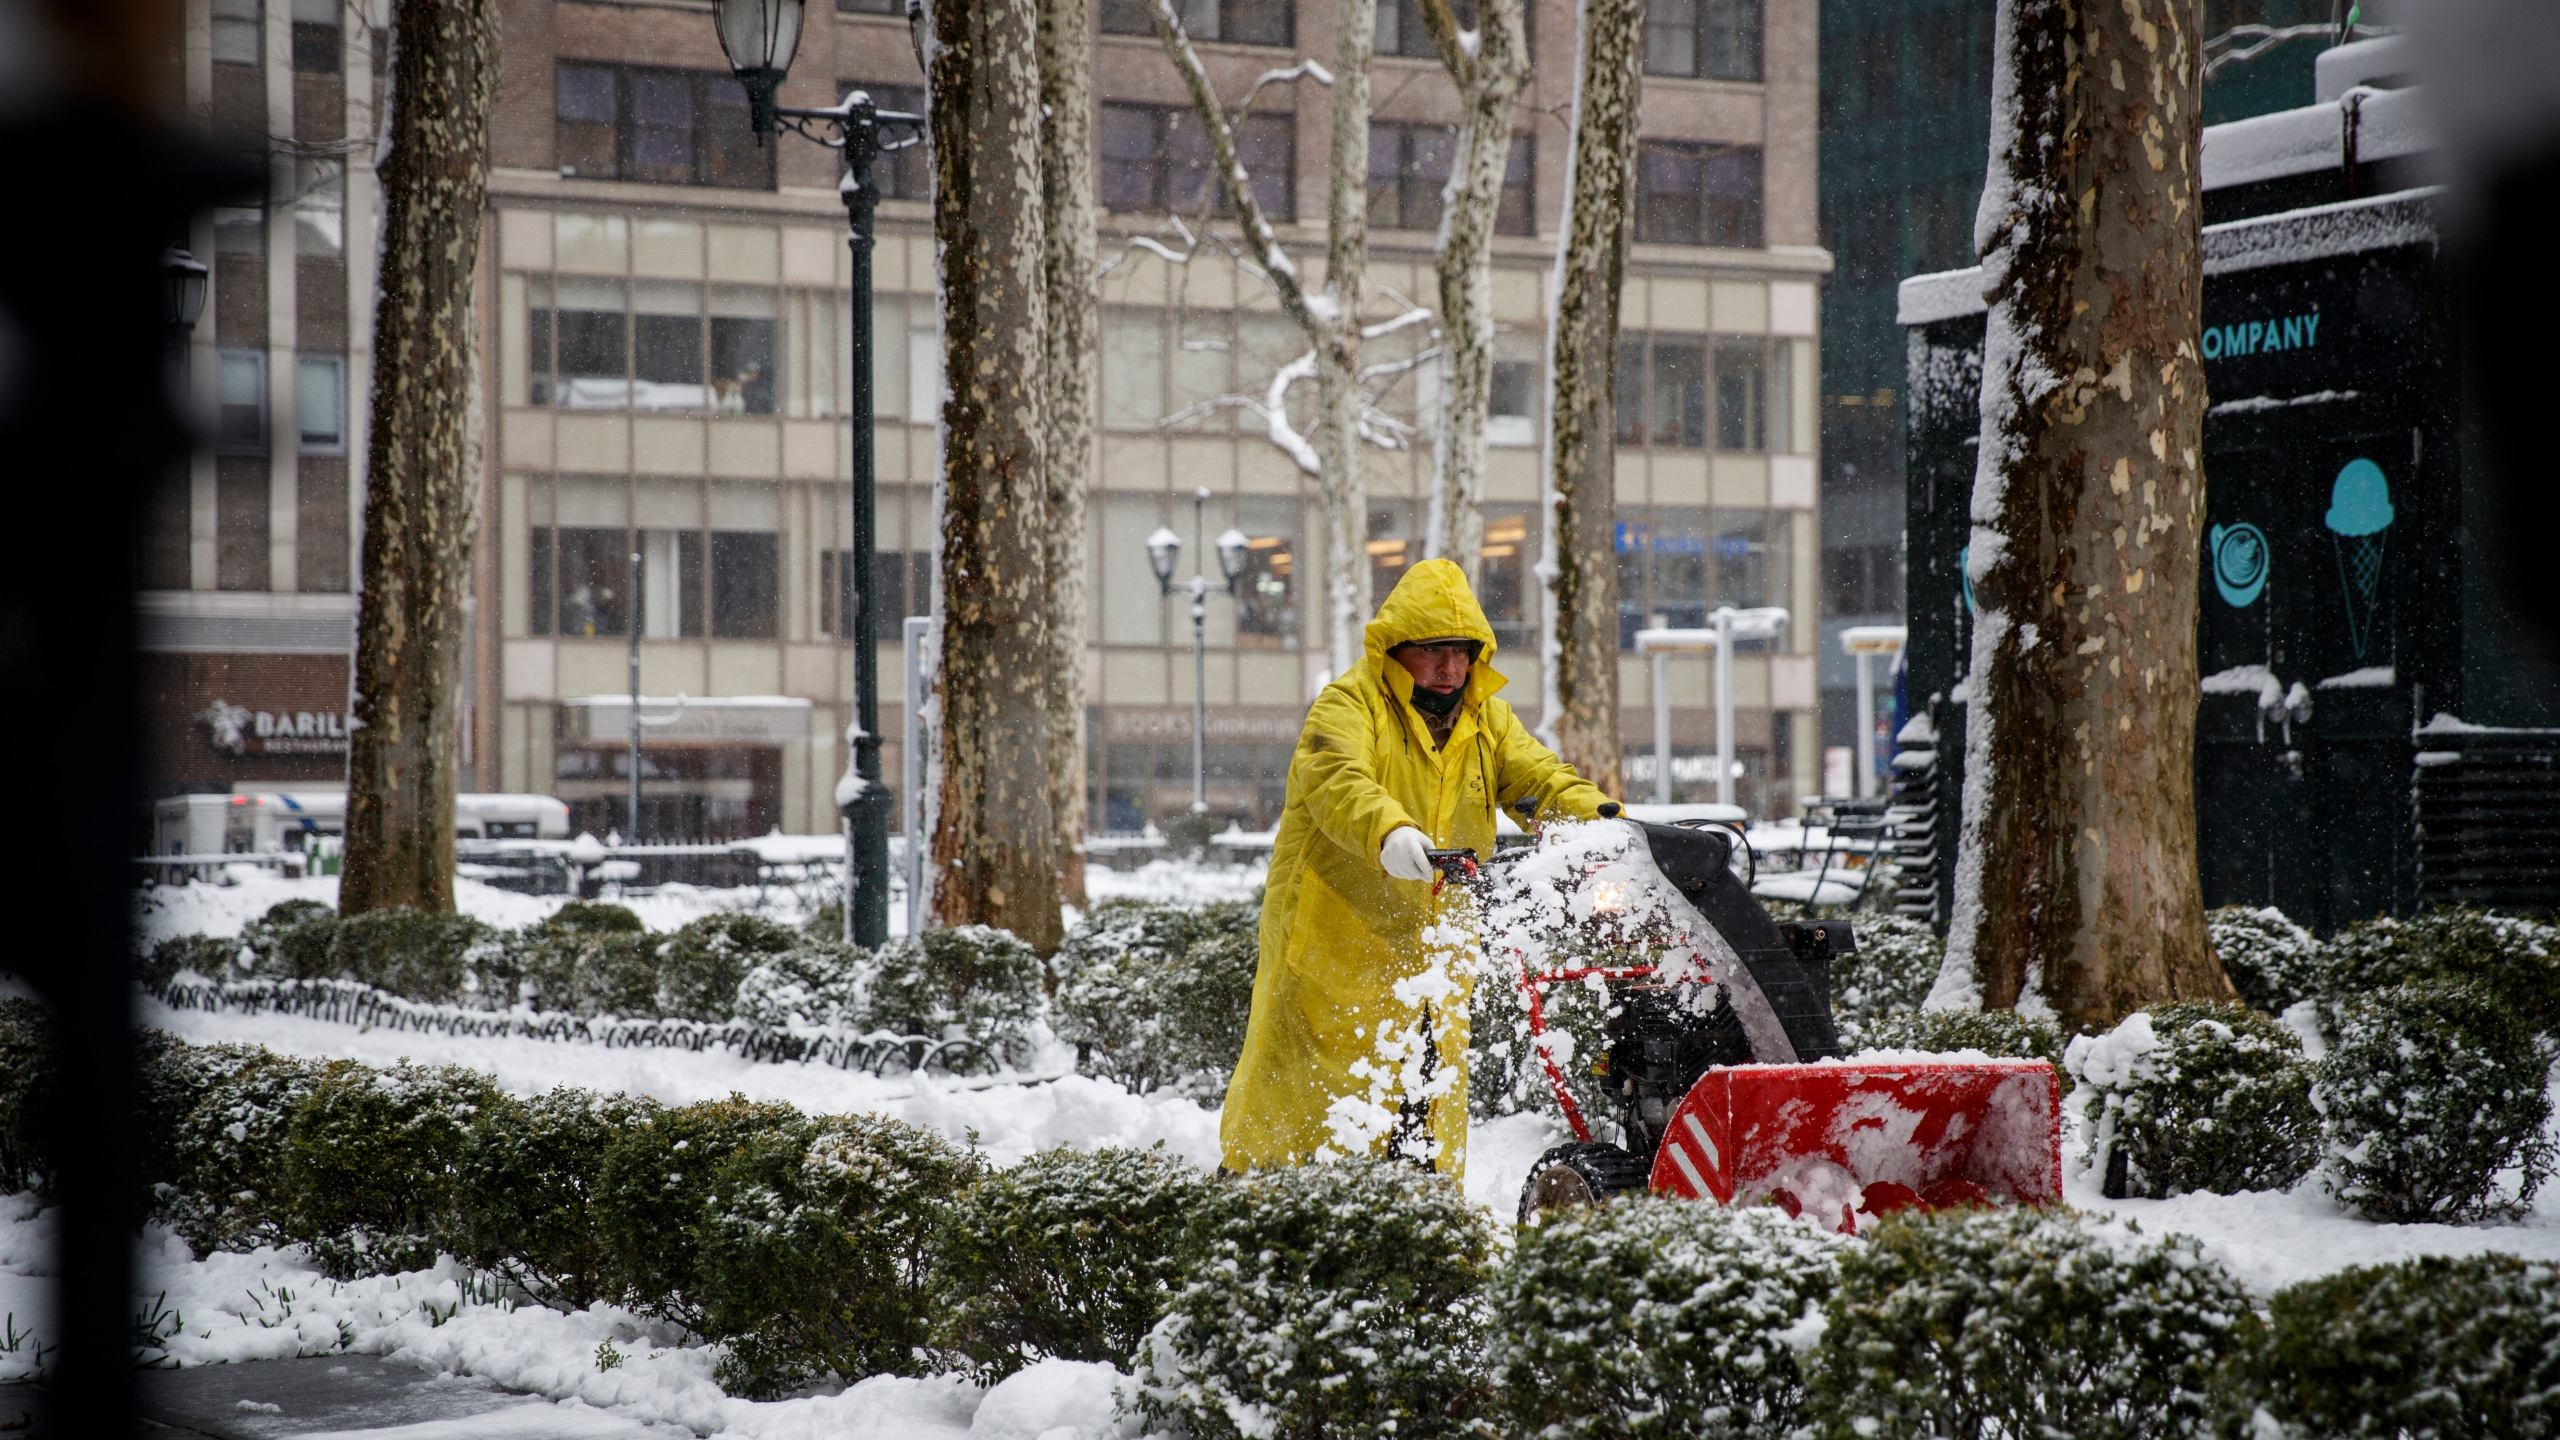 Storm Brings Snow, Sleet, And High Winds To Mid Atlantic Region On Second Day Of Spring_720422